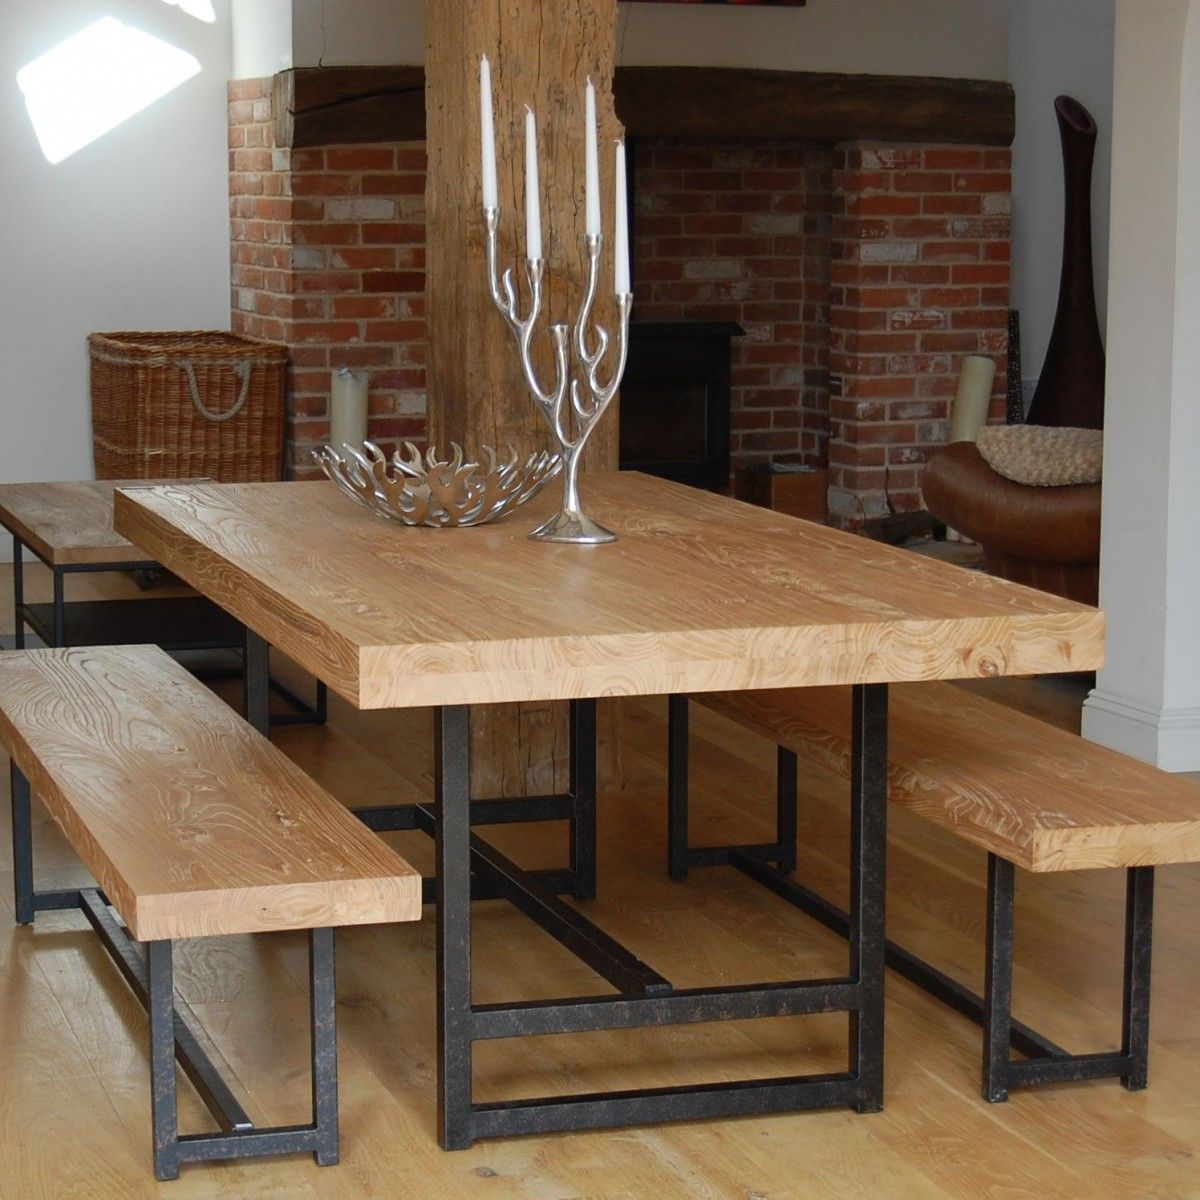 Unique Wood Slab Dining Table  Patio Table  Pinterest  Wood Extraordinary Unique Dining Room Sets Design Inspiration